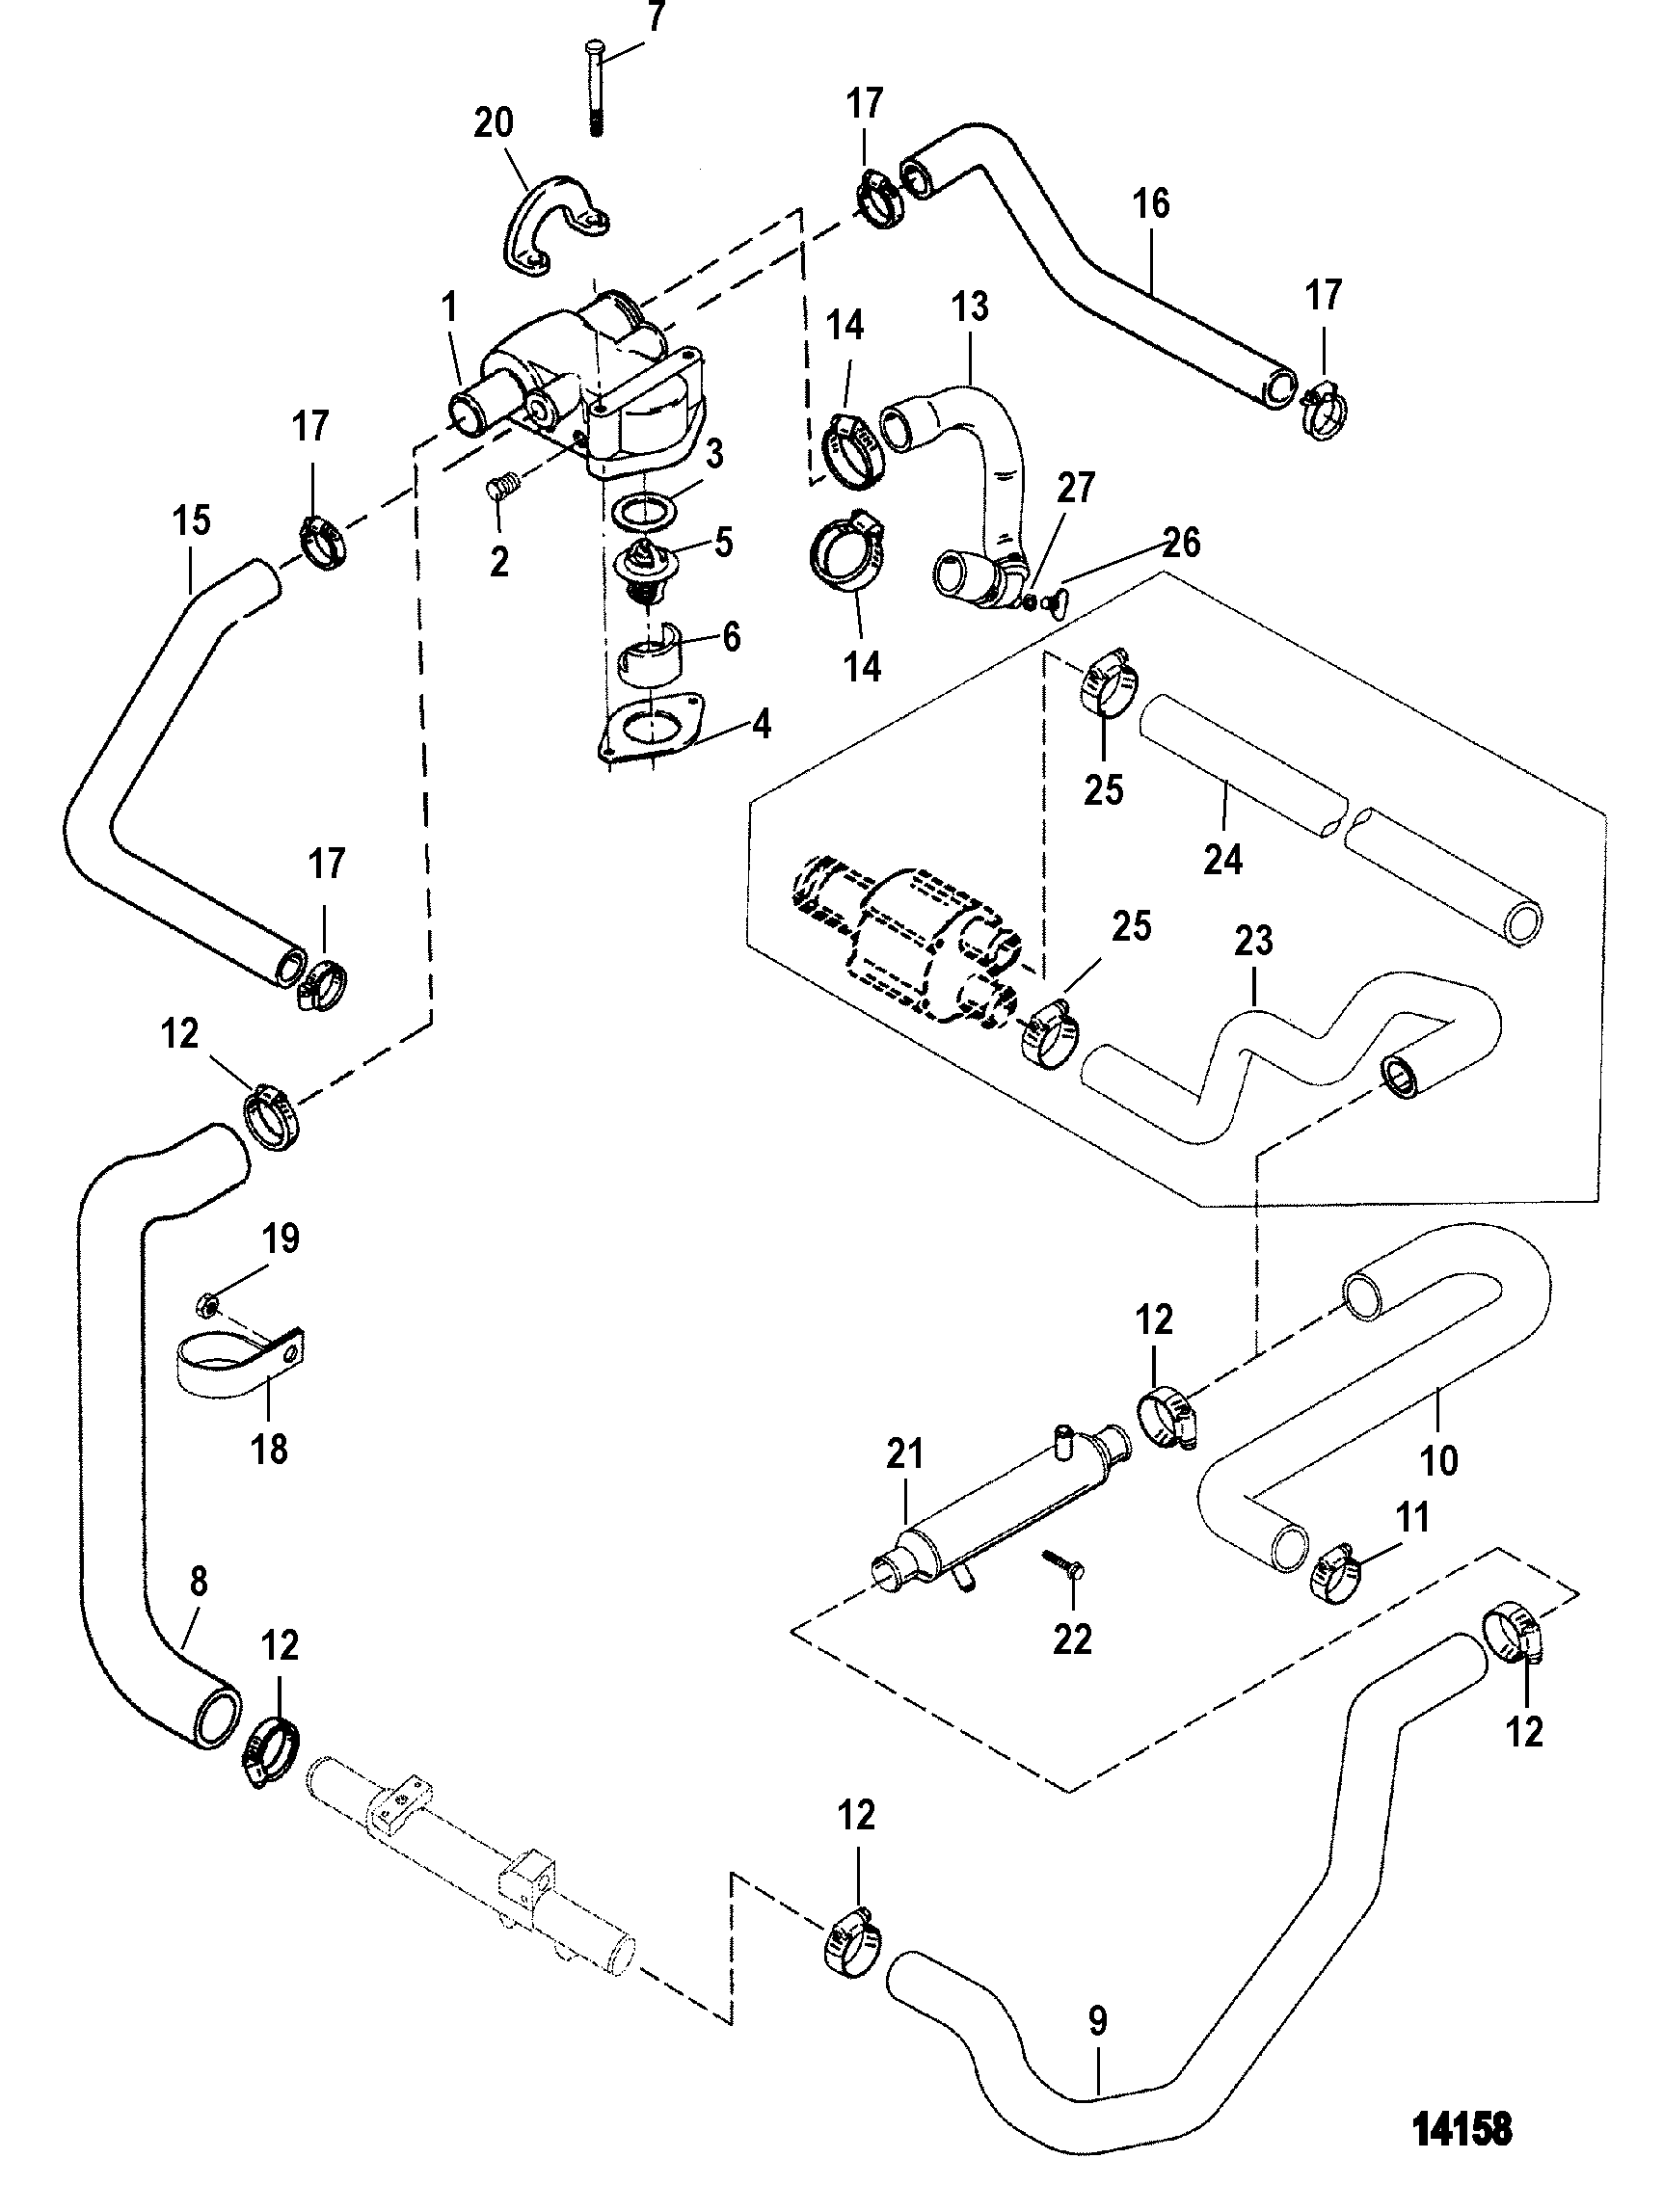 Ford Ranger Evaporative System Diagram as well Chrysler 300 Blend Door Actuator Location as well 7o9wt Dodge Caliber Need Serpentine Belt Routing Diagram besides Escalade Fuse Panel Locations furthermore 1v53v 2004 Pacifica Fan Blows Constantly May Blower Motor Resistor. on 2001 chrysler town country fuse box diagram